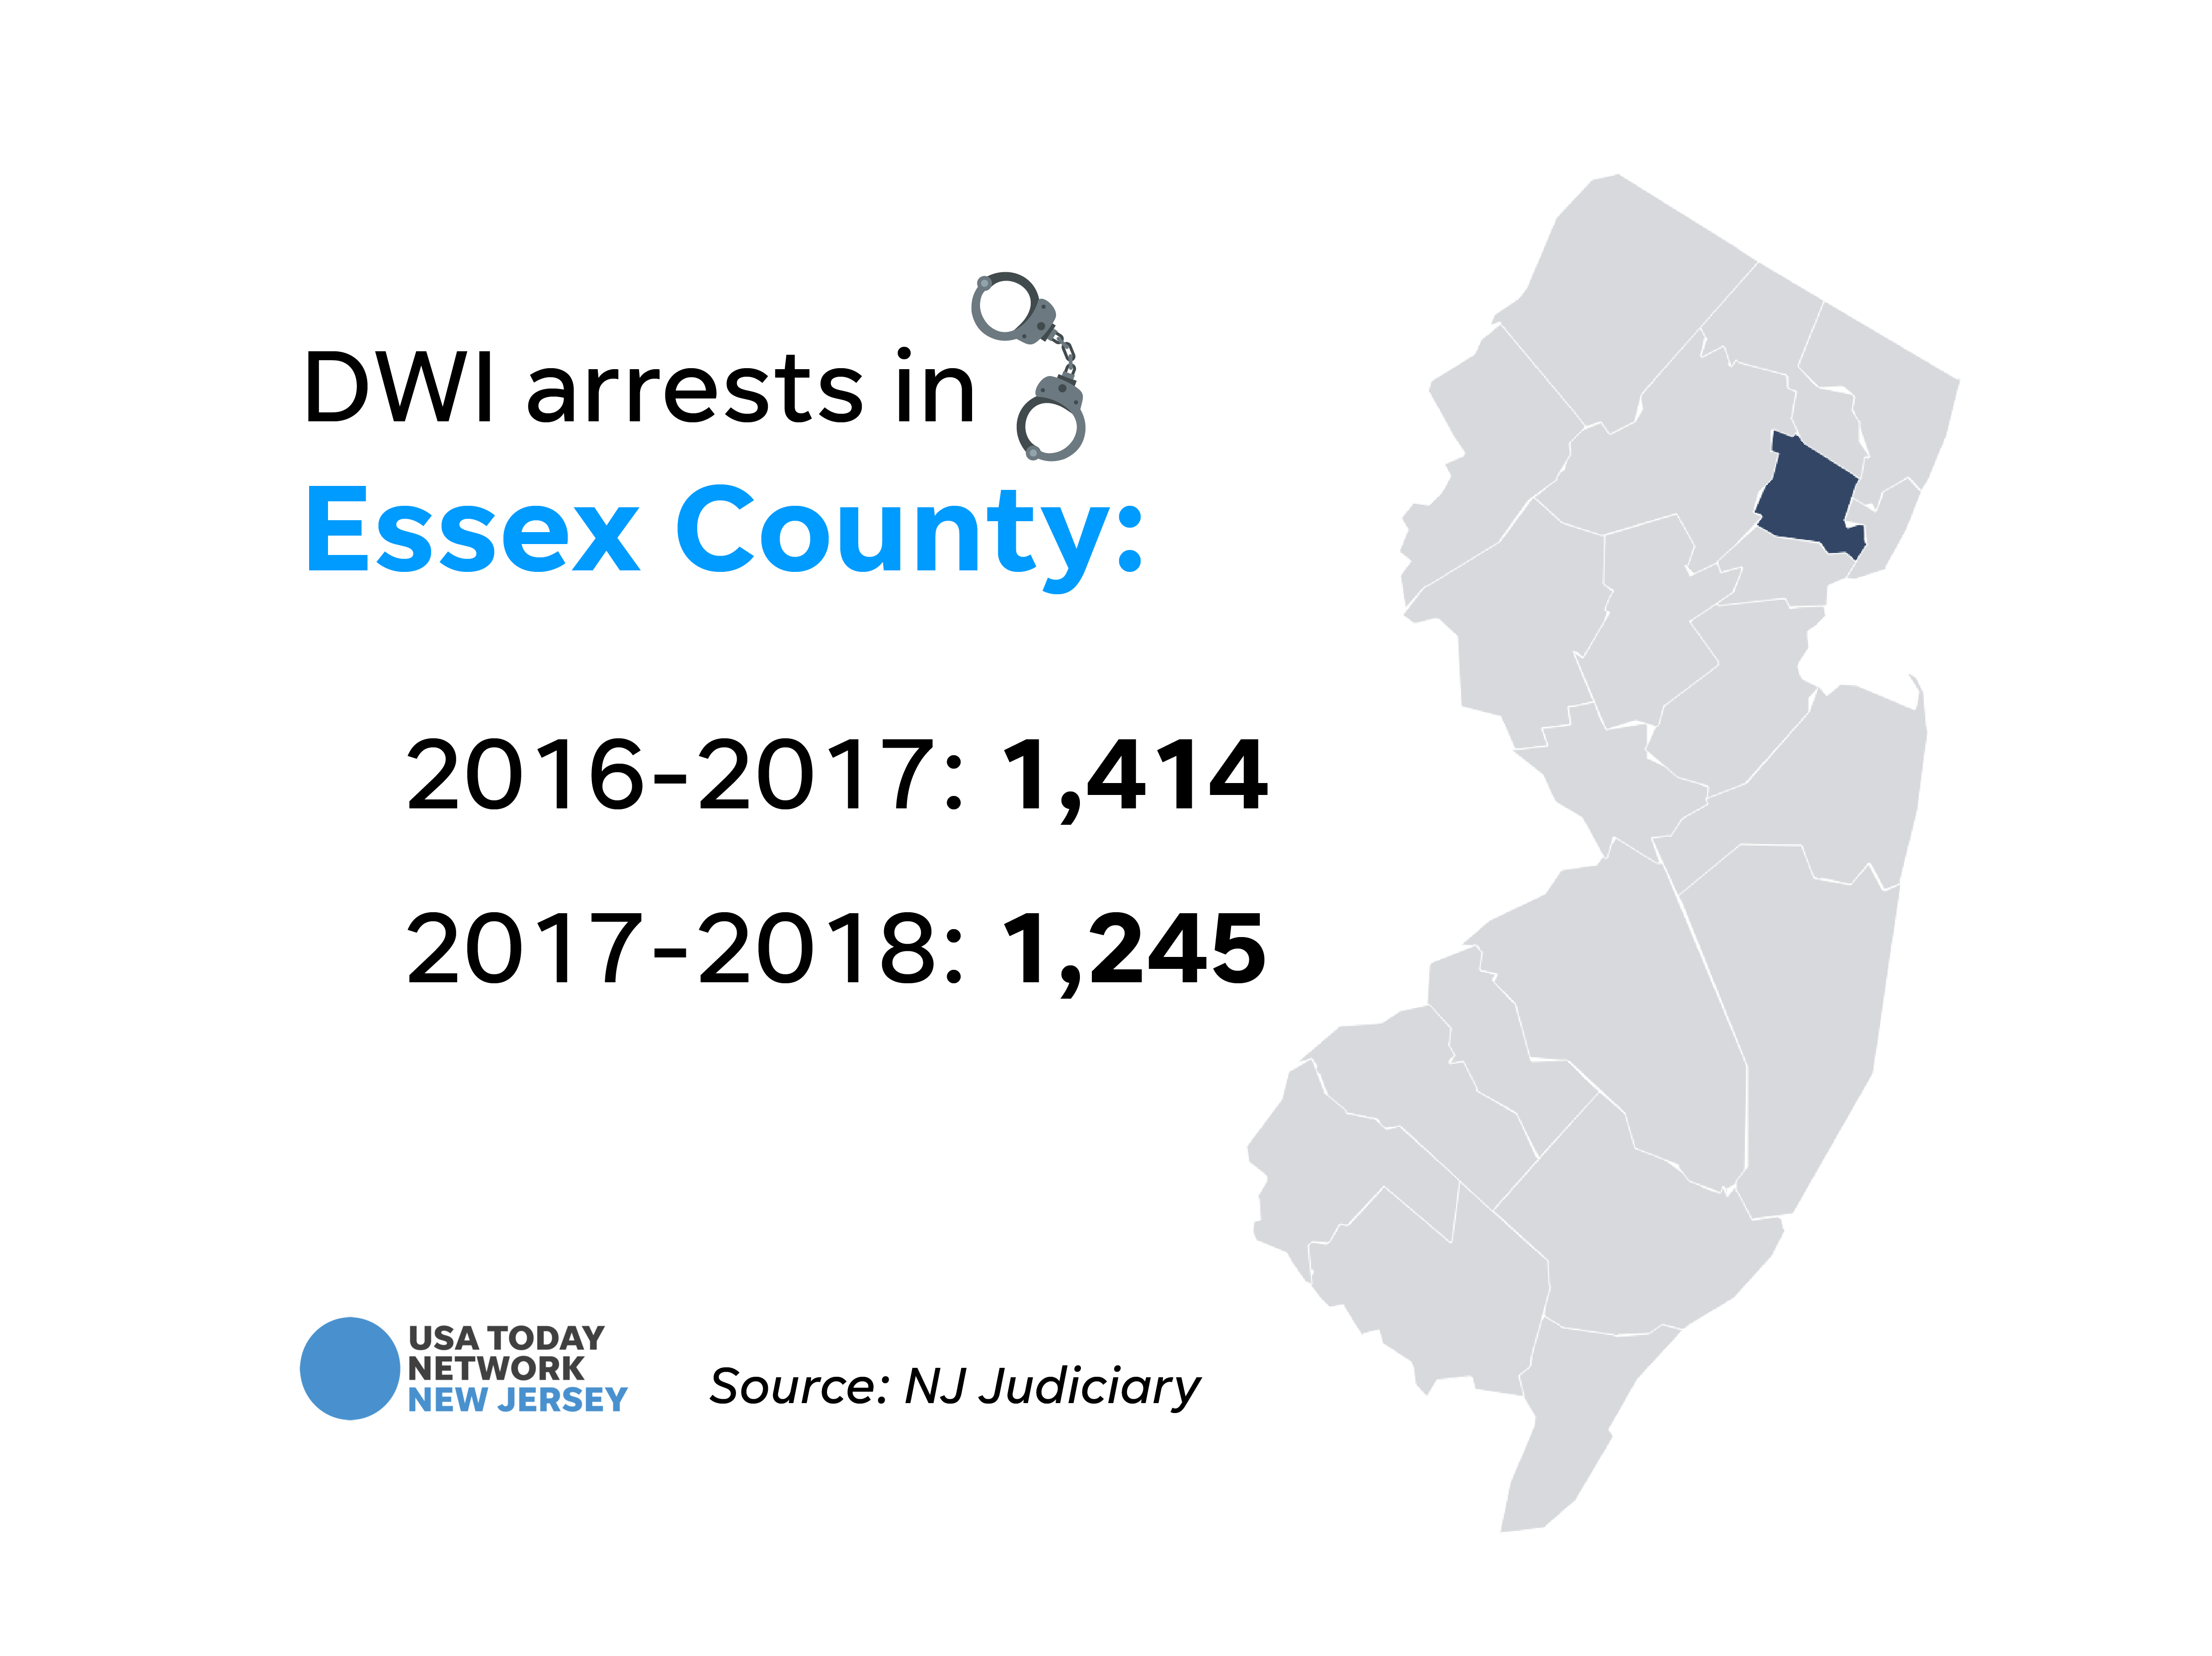 DWI arrests in Essex County.